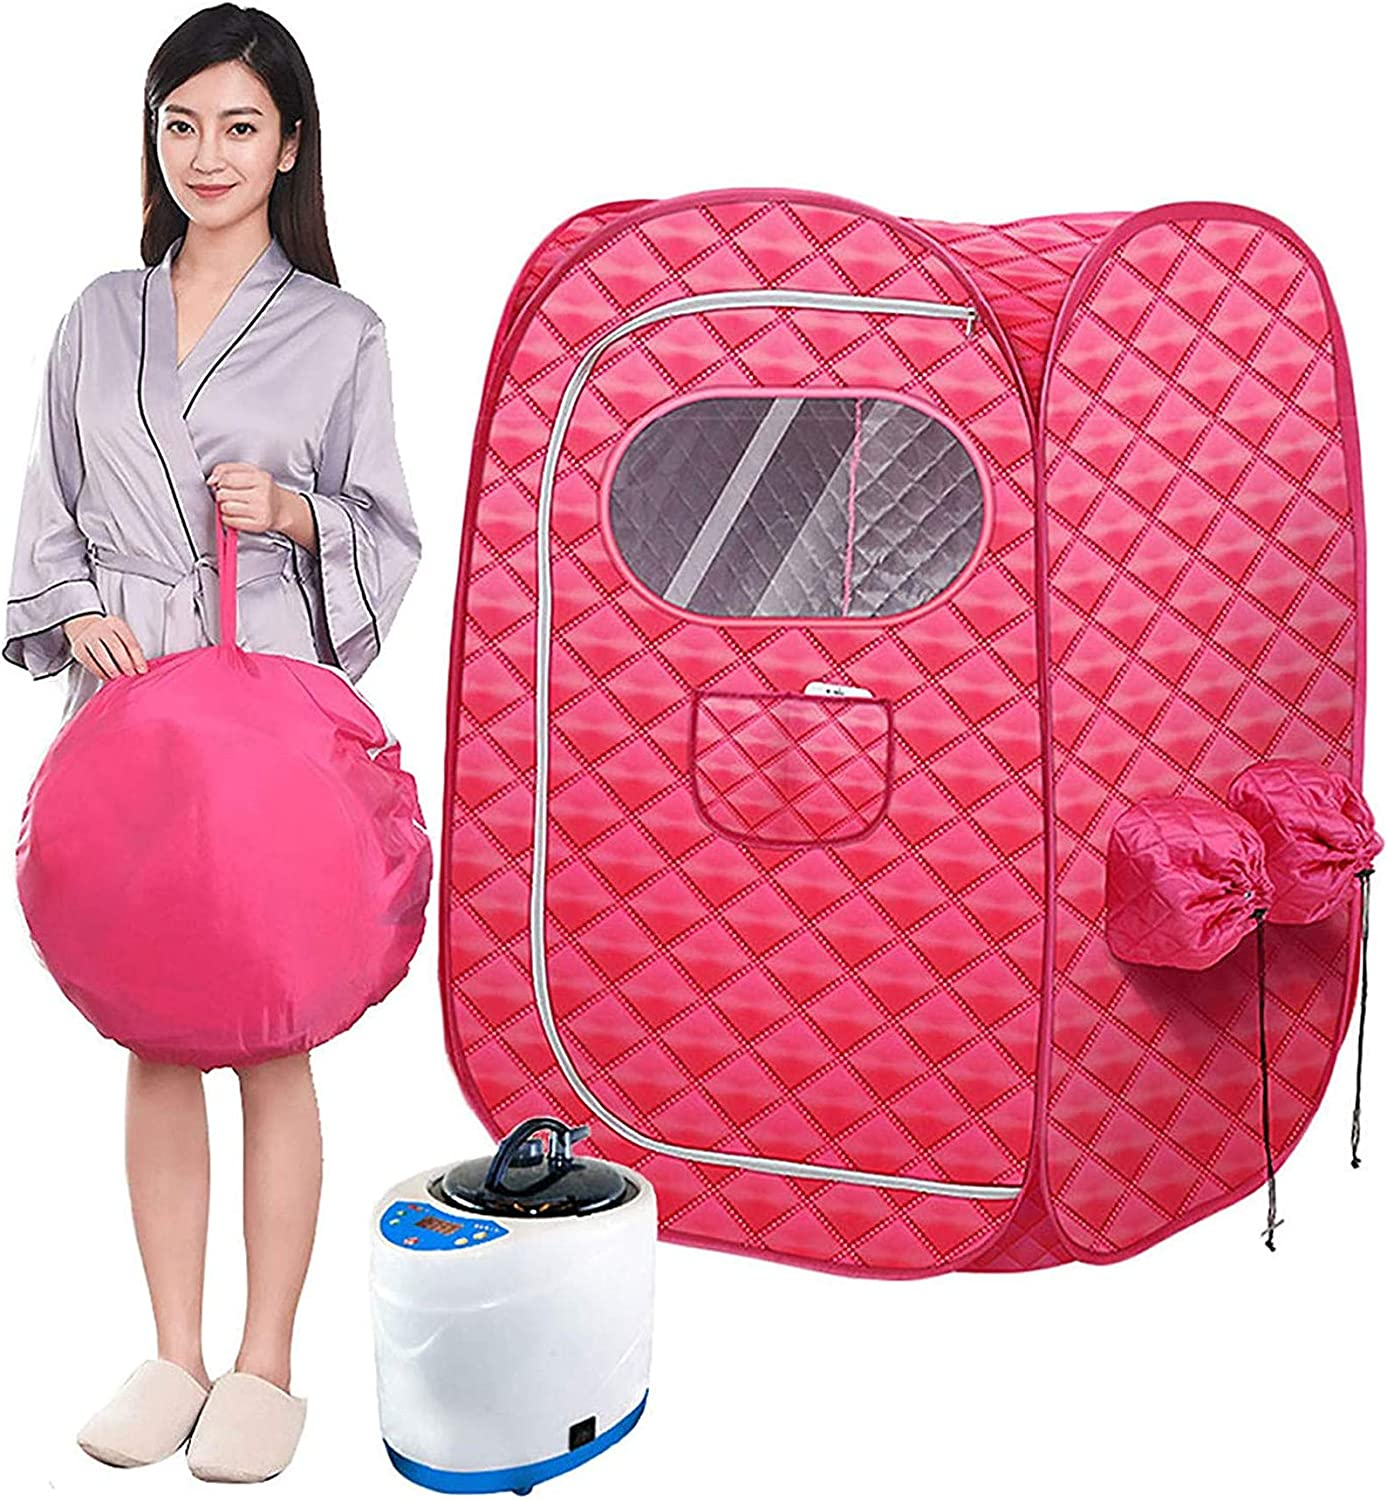 Yaad Portable Steam Sauna Spa, Folding 3L Dual Treatment Sauna with Remote Control, Weight Loss Detox Relaxes Weight Loss at Home